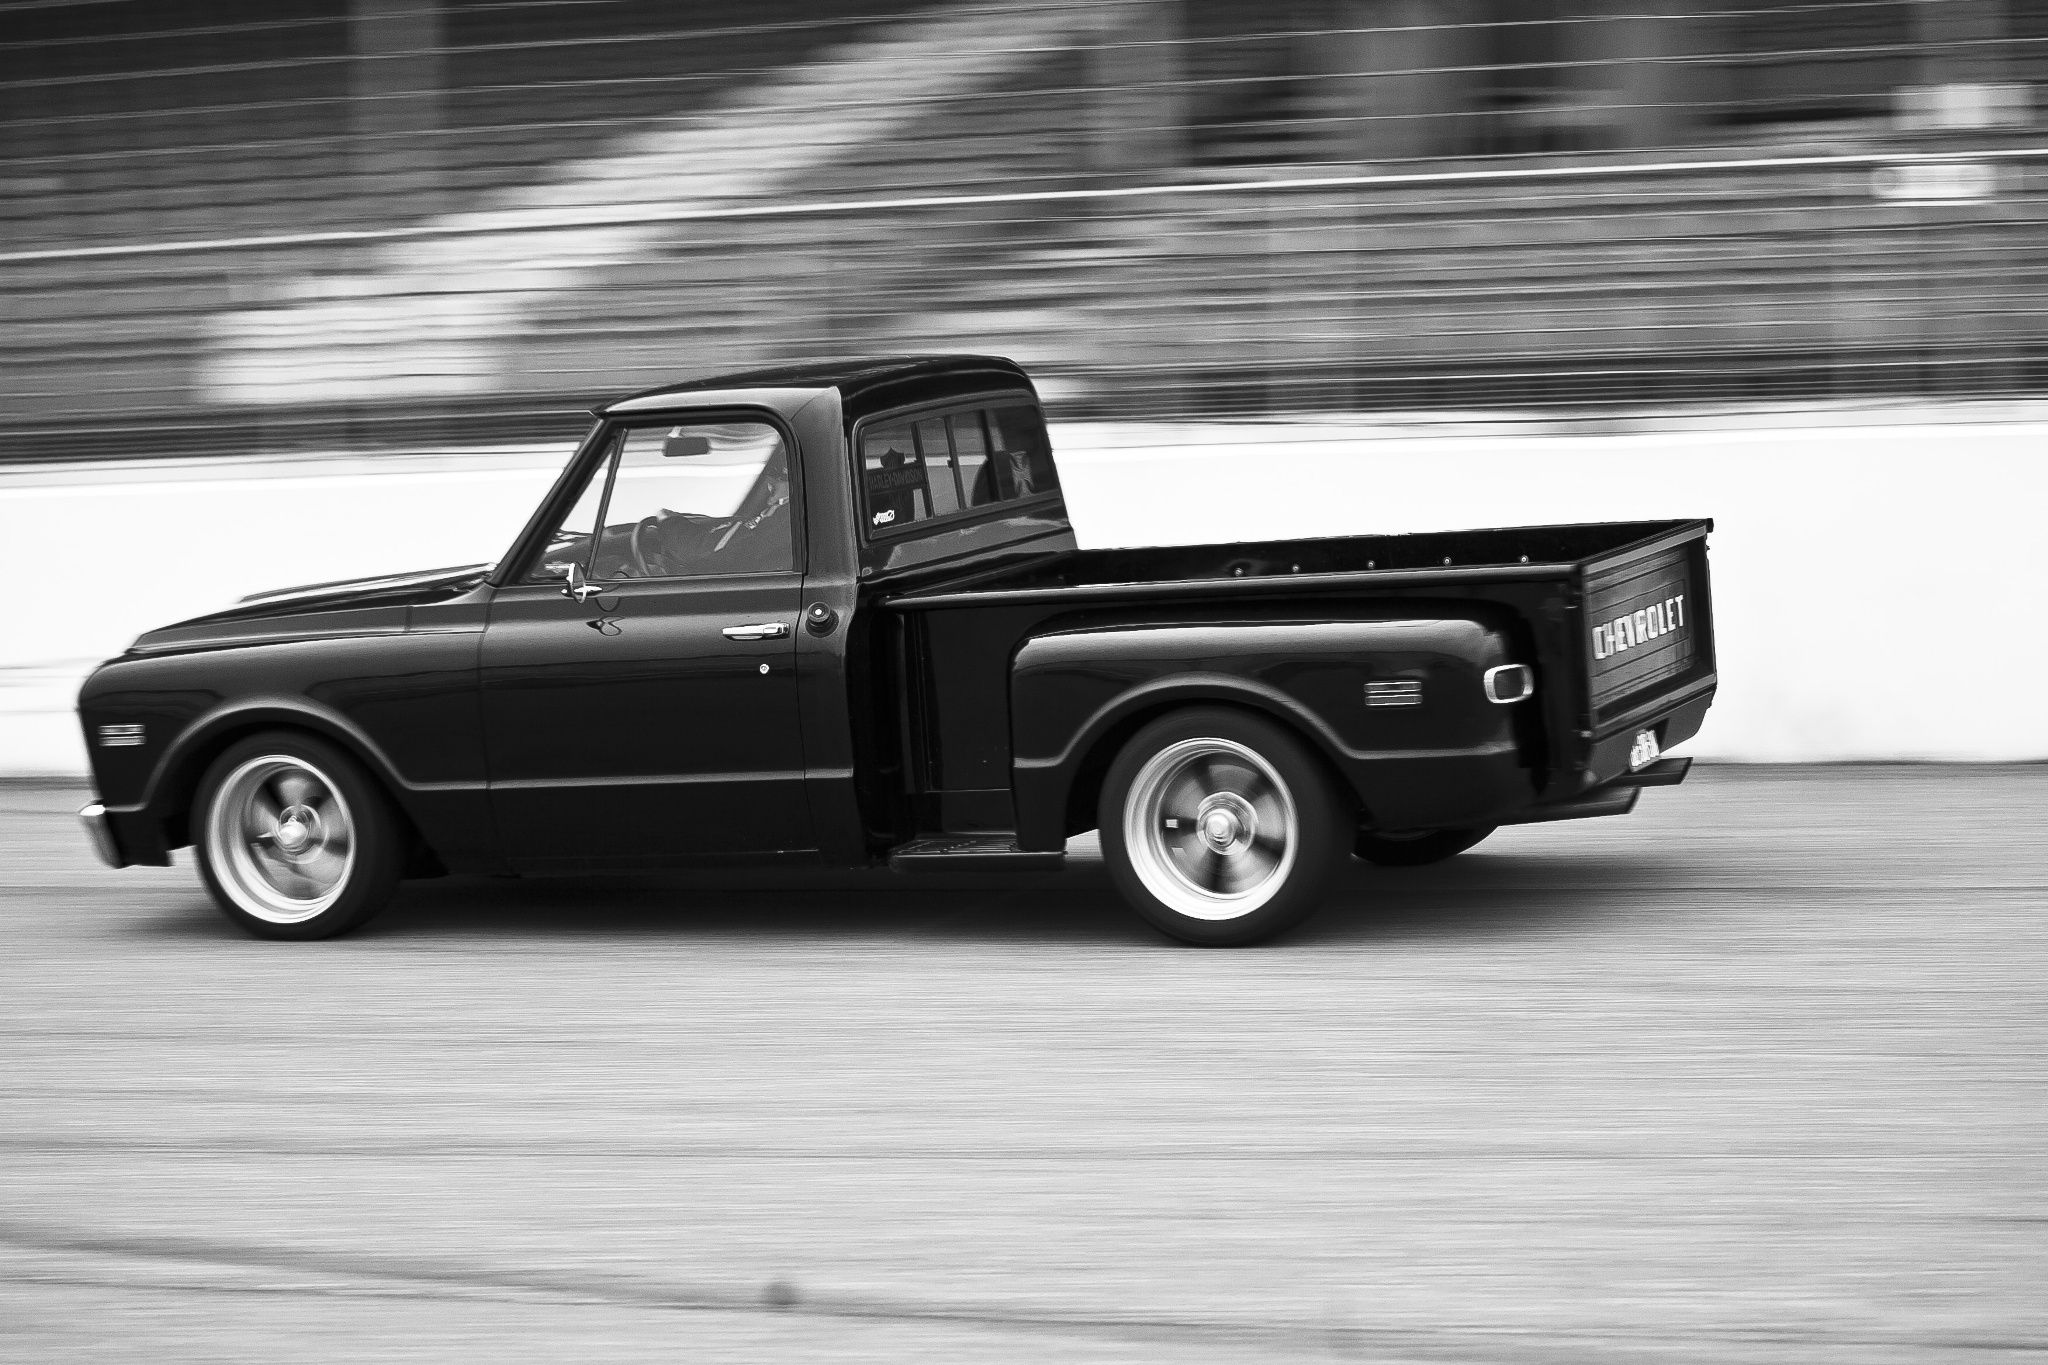 Chevy C 10 stepside 1969 by Cees Lengers on 500px